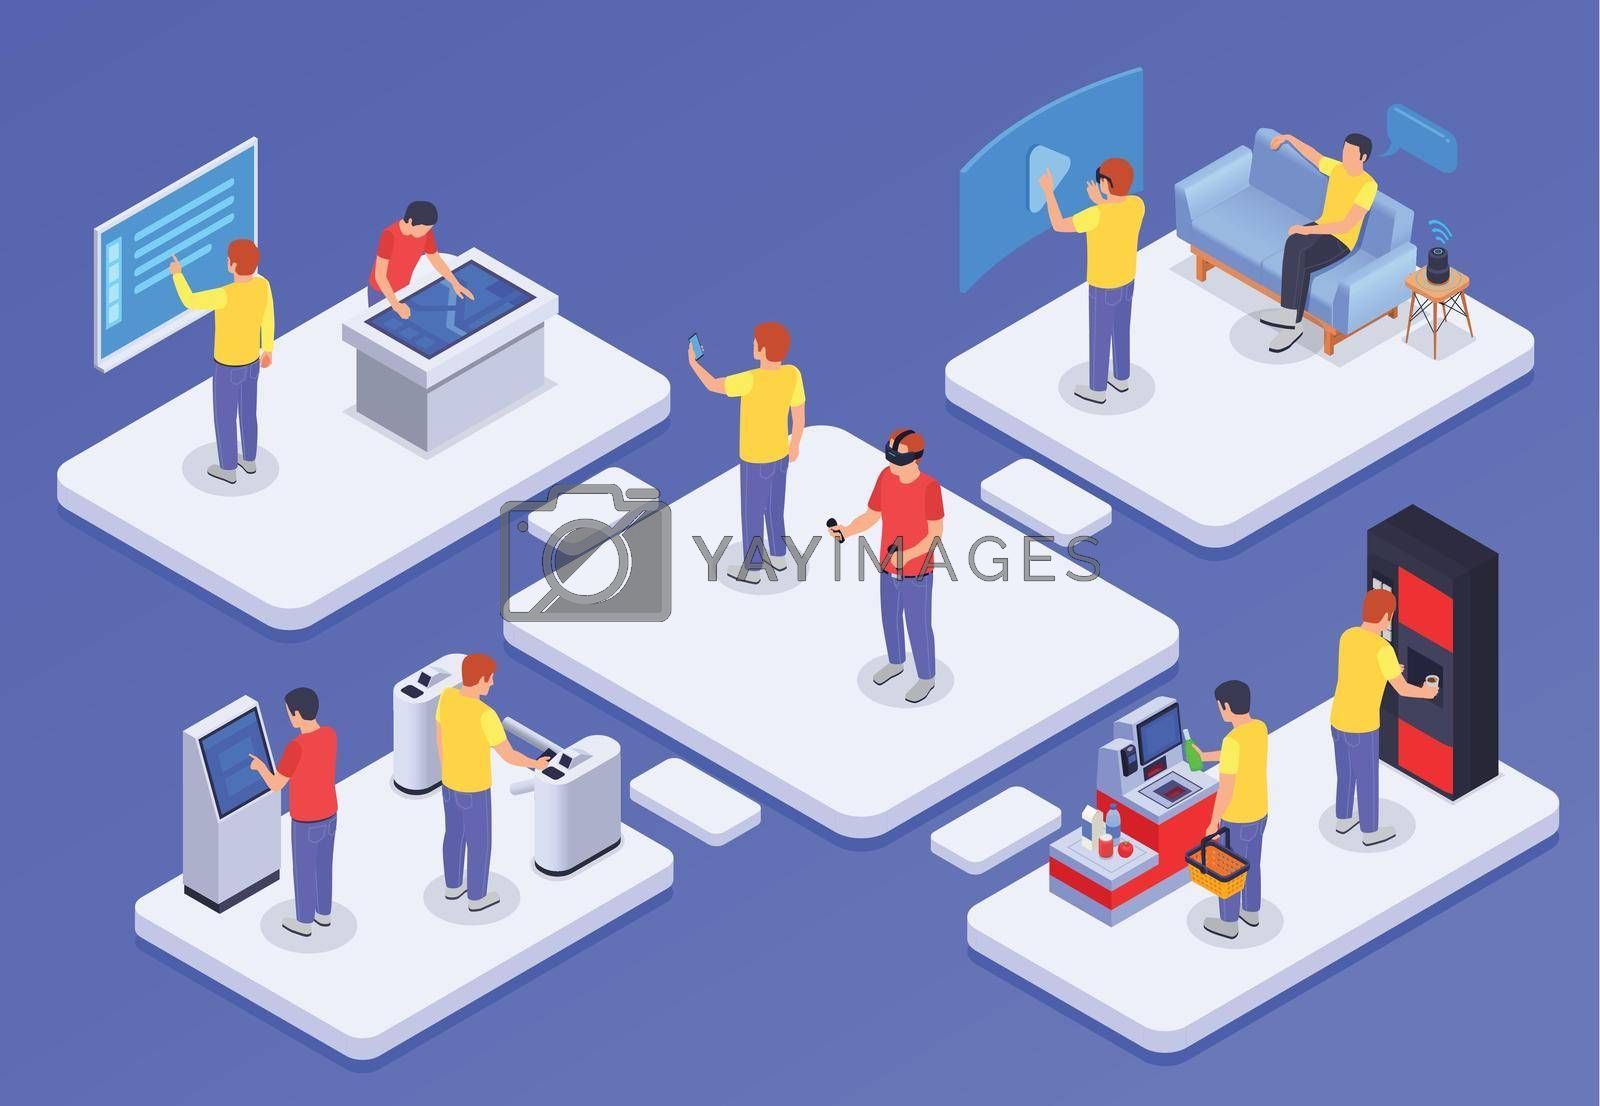 Royalty free image of People And Interfaces Concept by mstjahanara